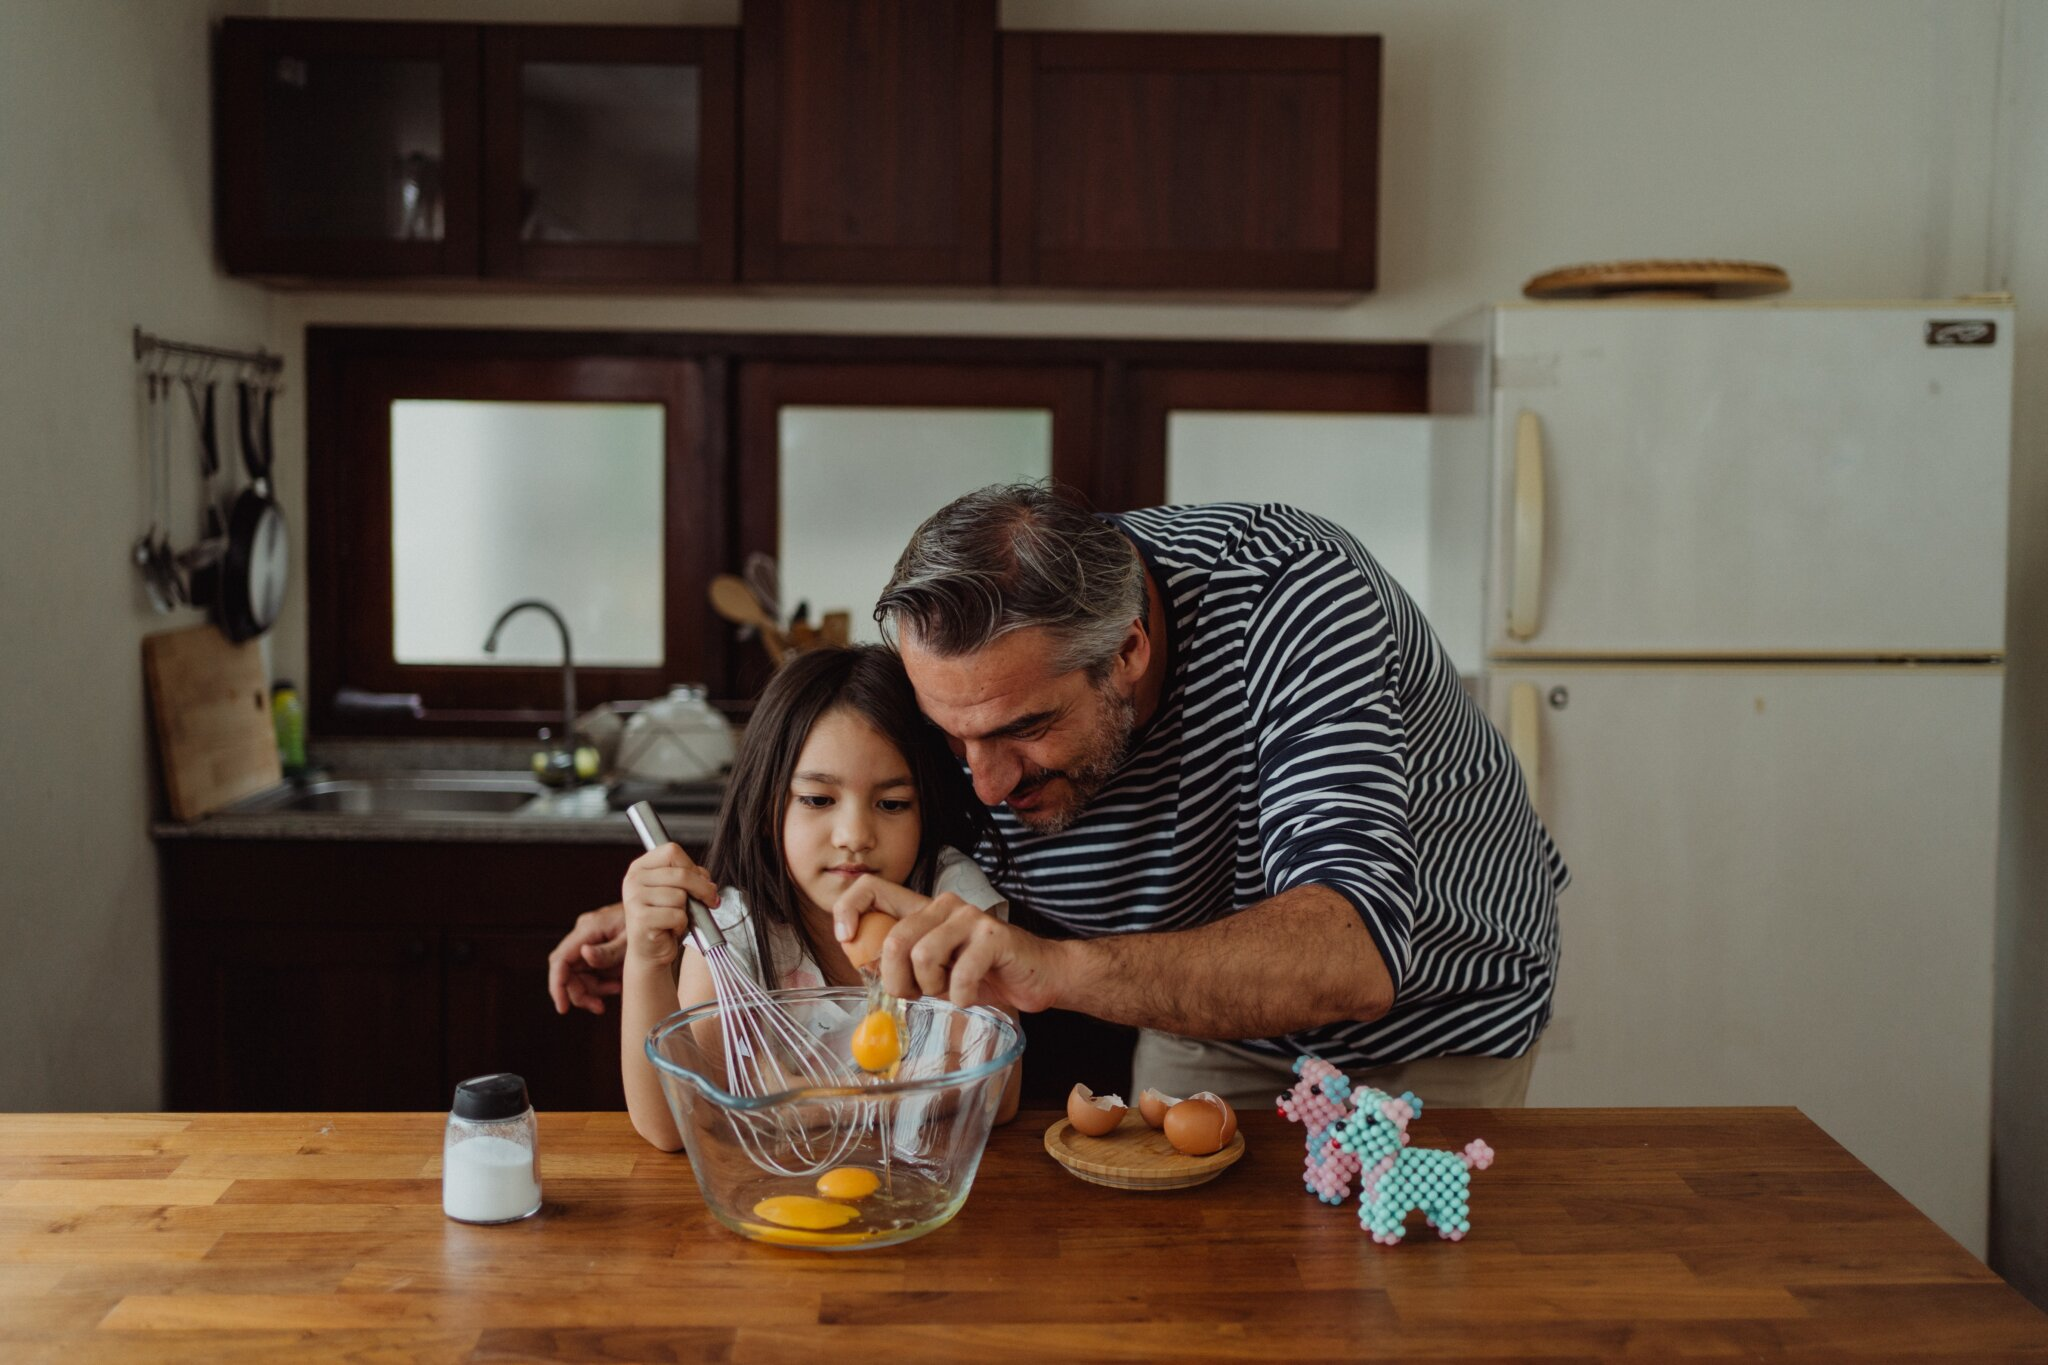 Dad Tips for creating more meaningful memories